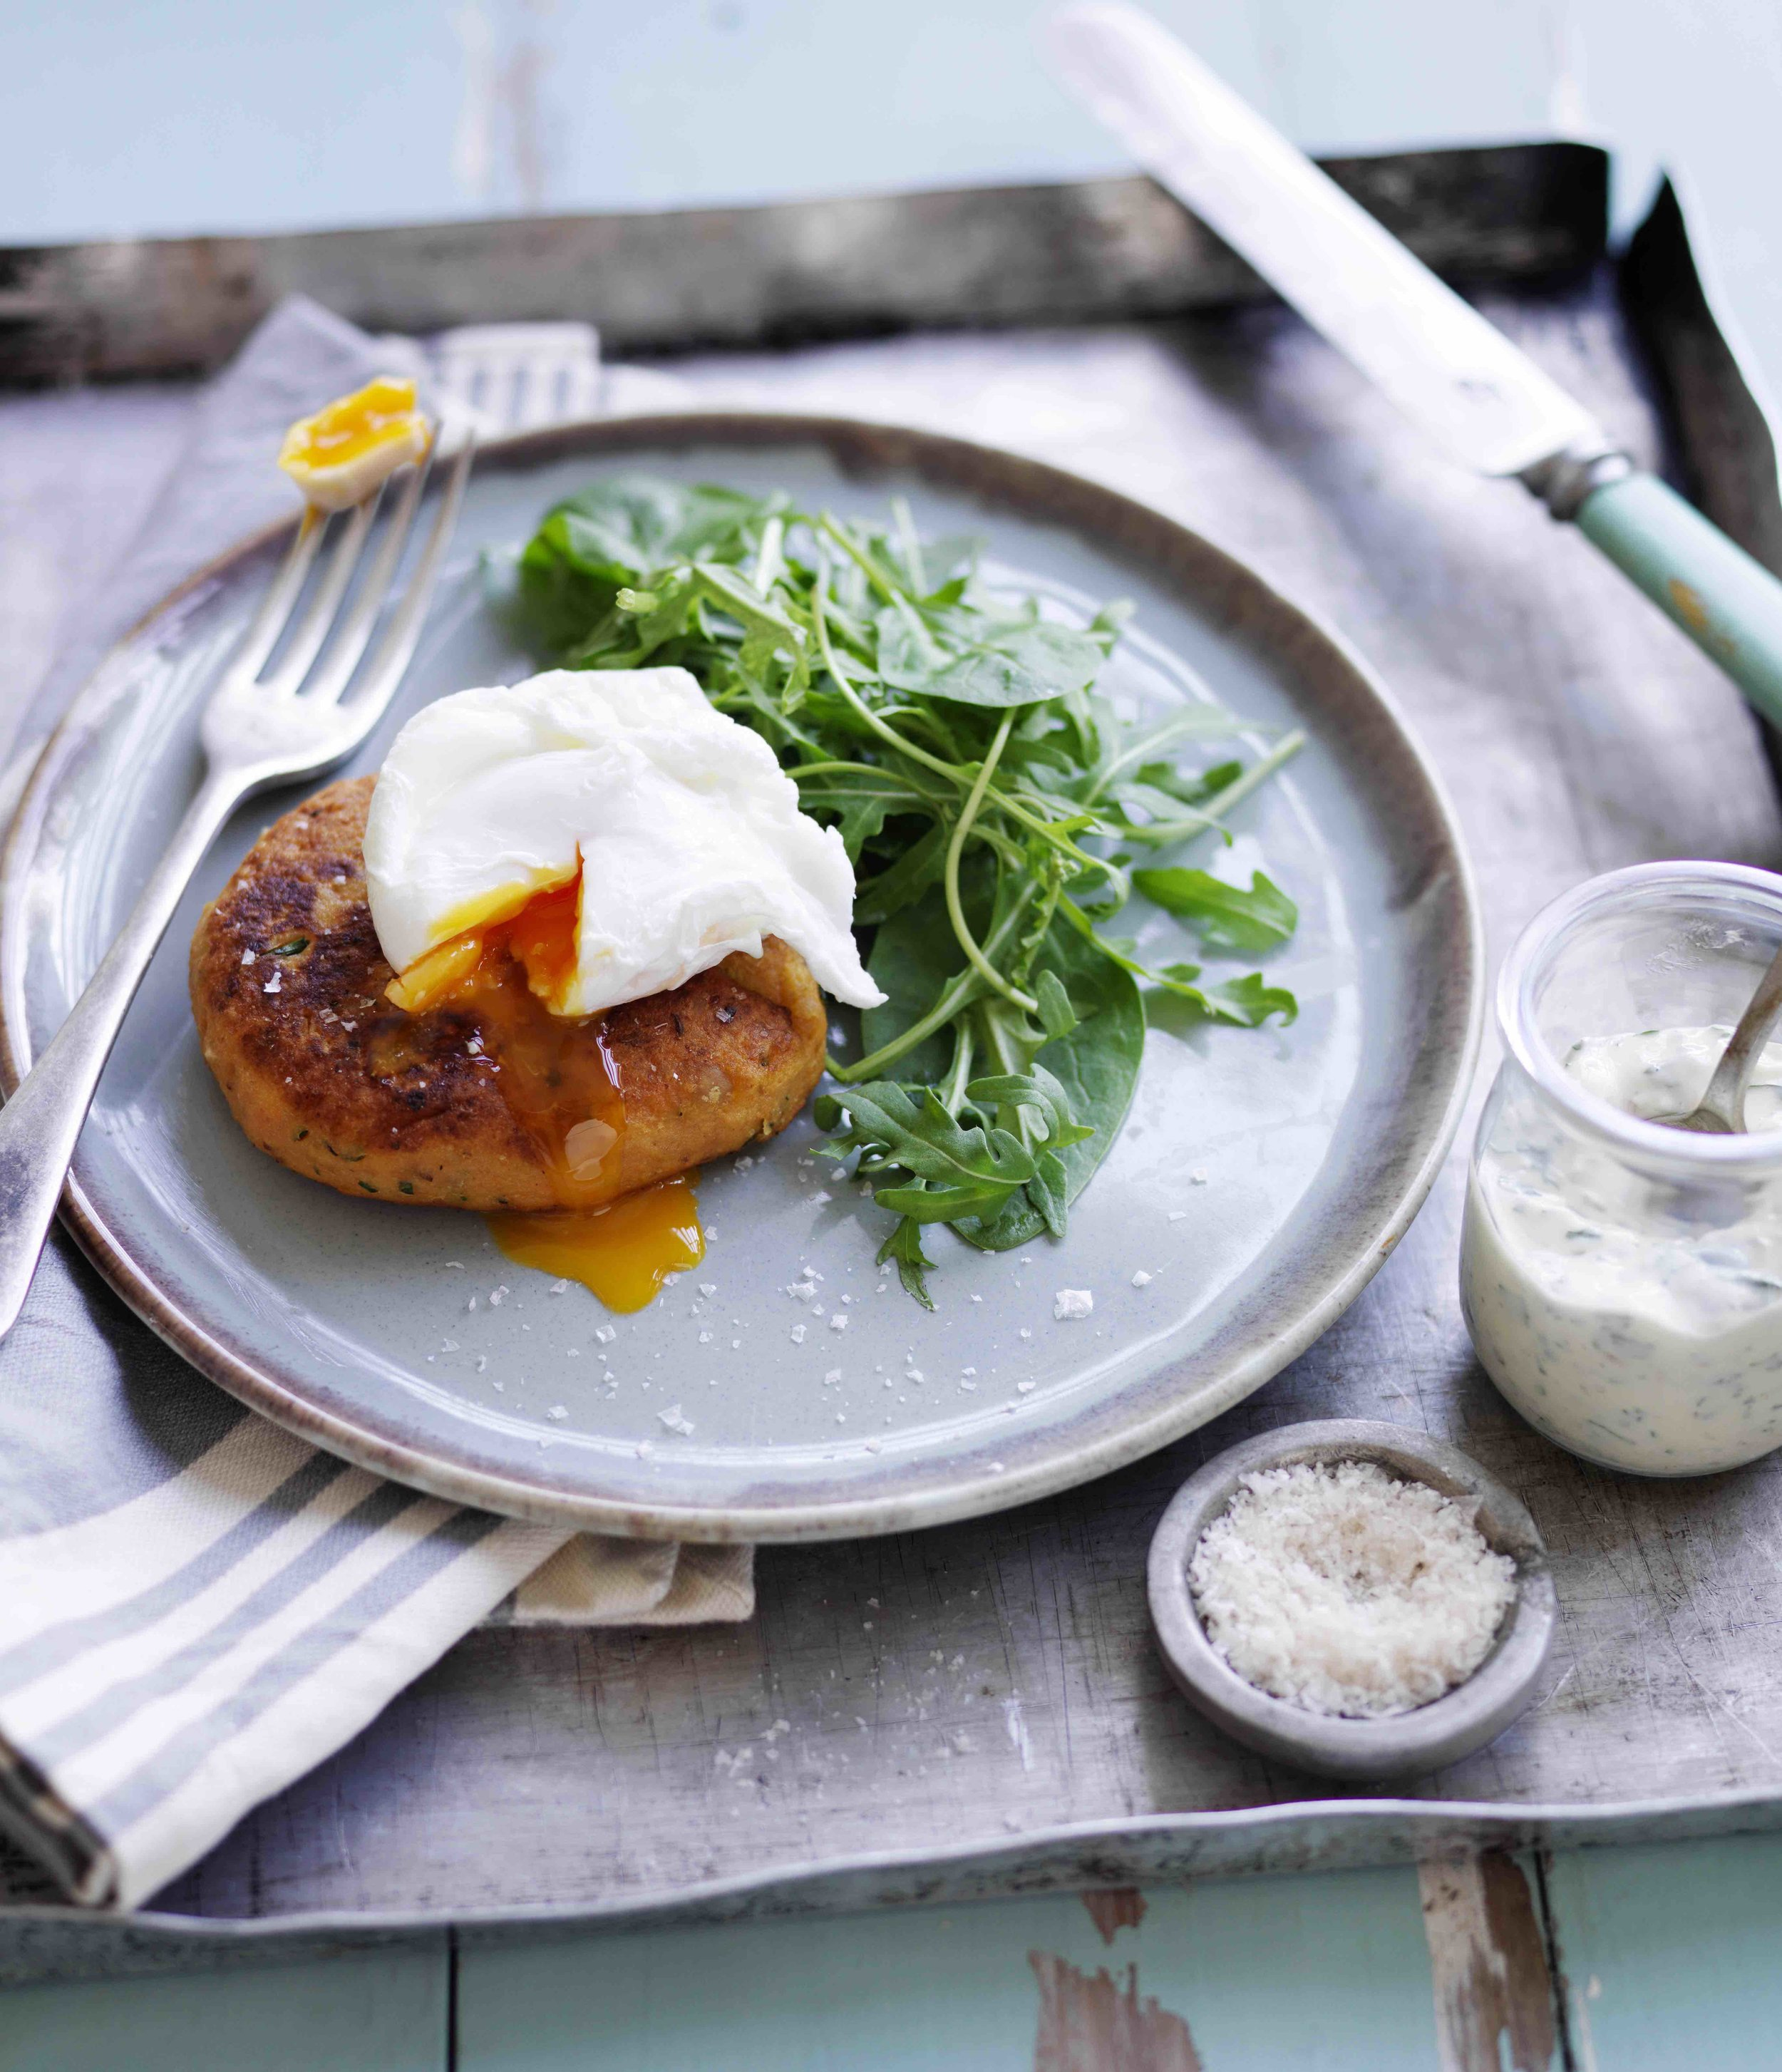 Dish It Up - Spiced Chickpea and Sweet Potato Cakes copy.jpeg